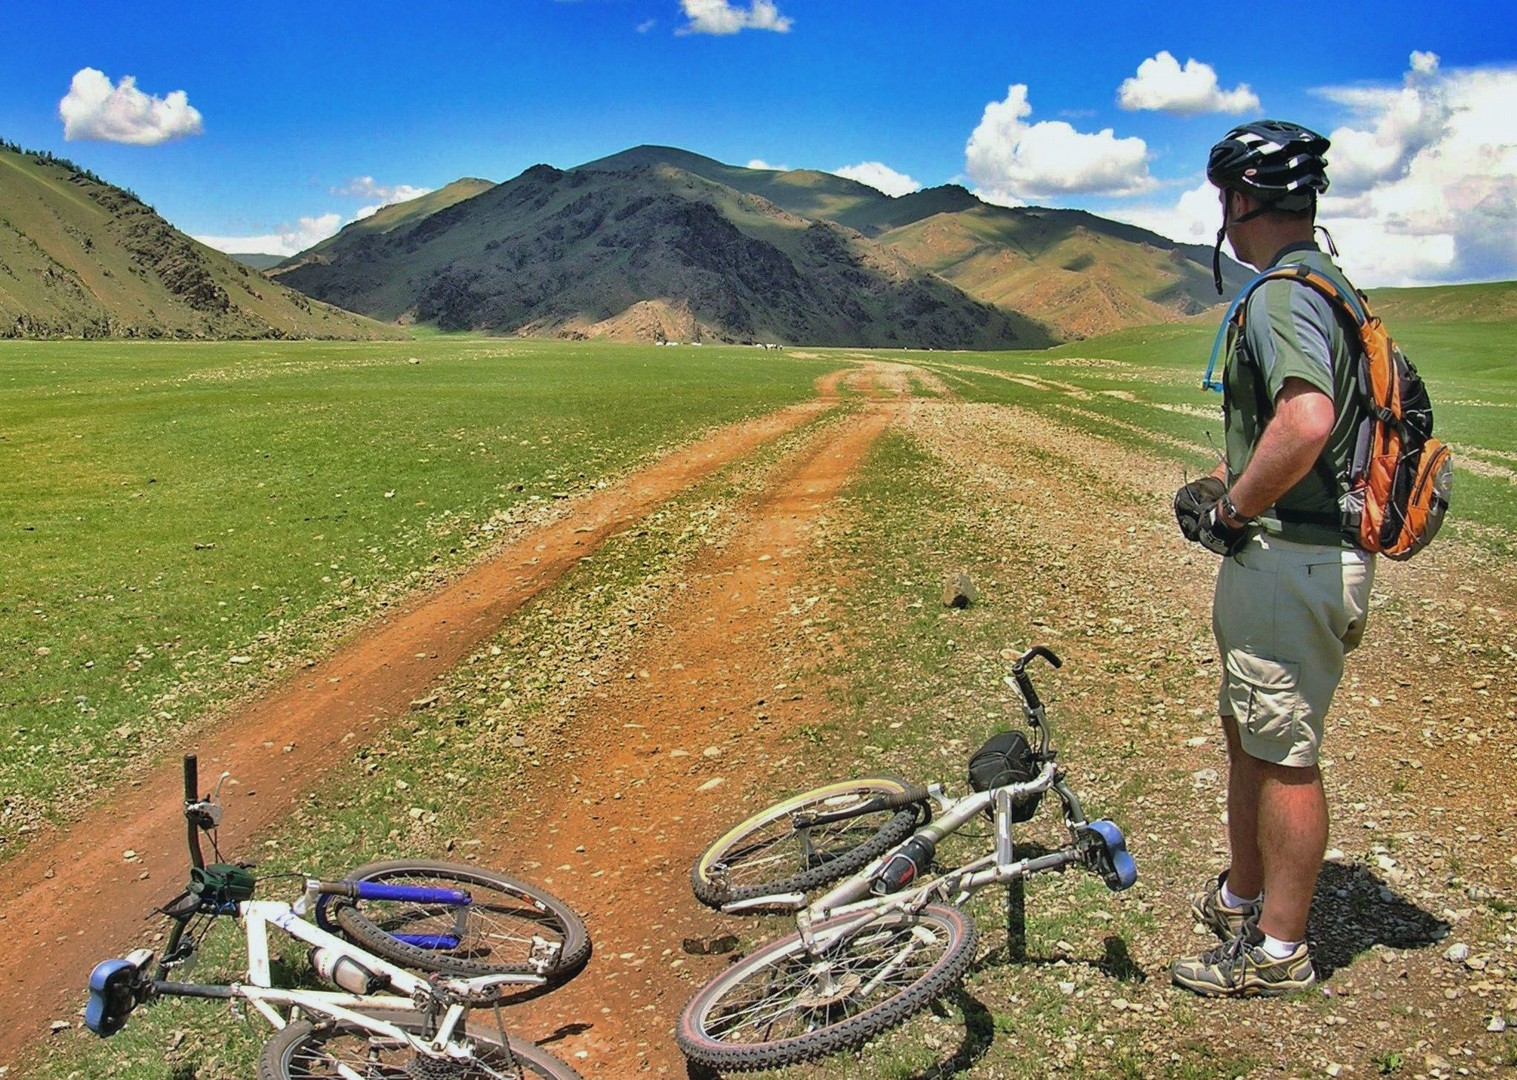 mongolia-cycling-holiday-erdenne-zhu-monastery.jpg - NEW! Mongolia - Route of the Nomads - Cycling Adventures